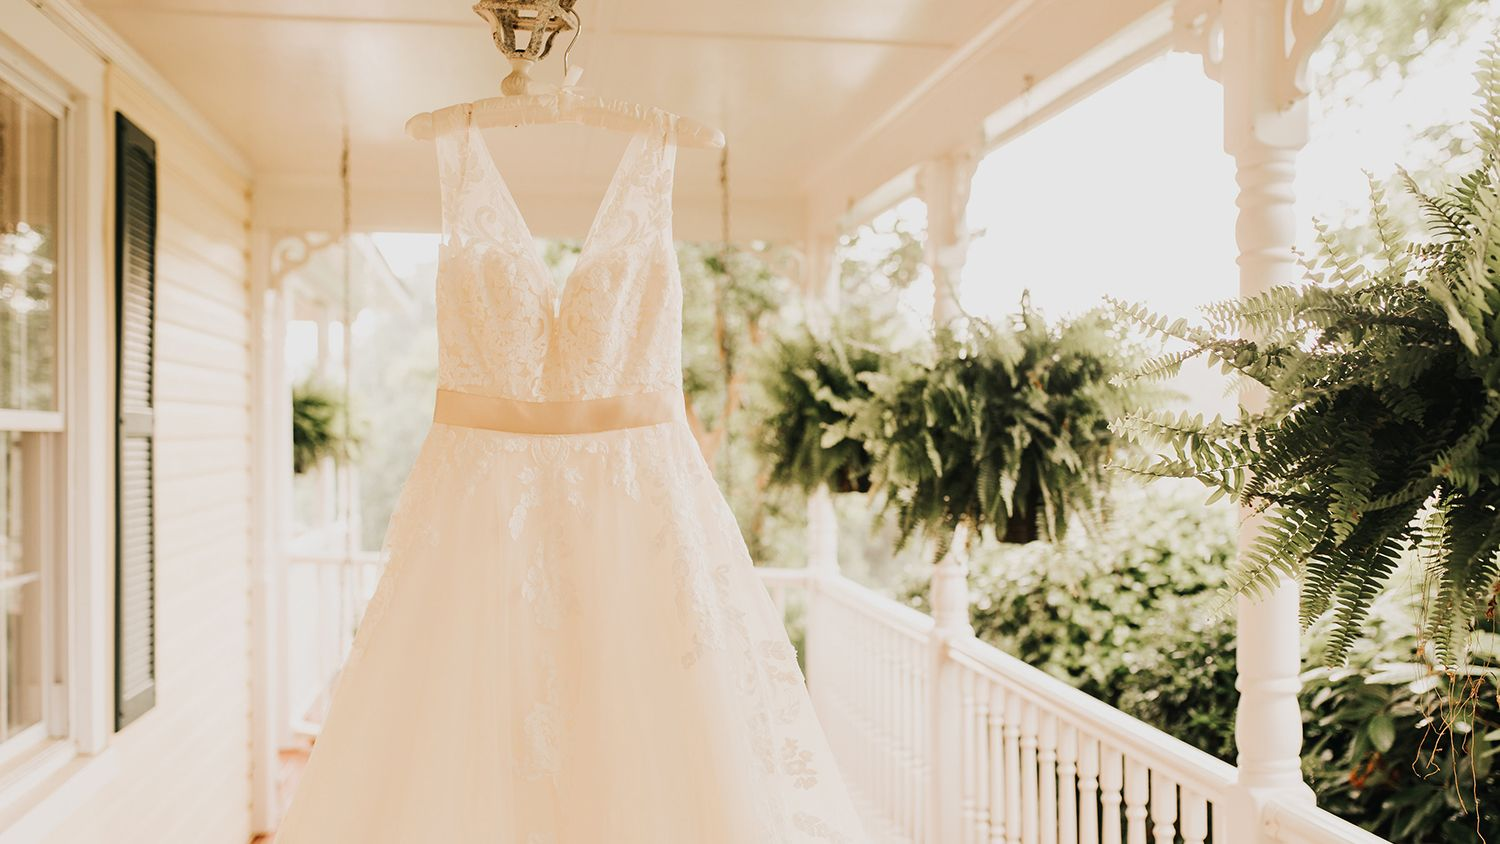 Wedding Dress Hanging Front Porch